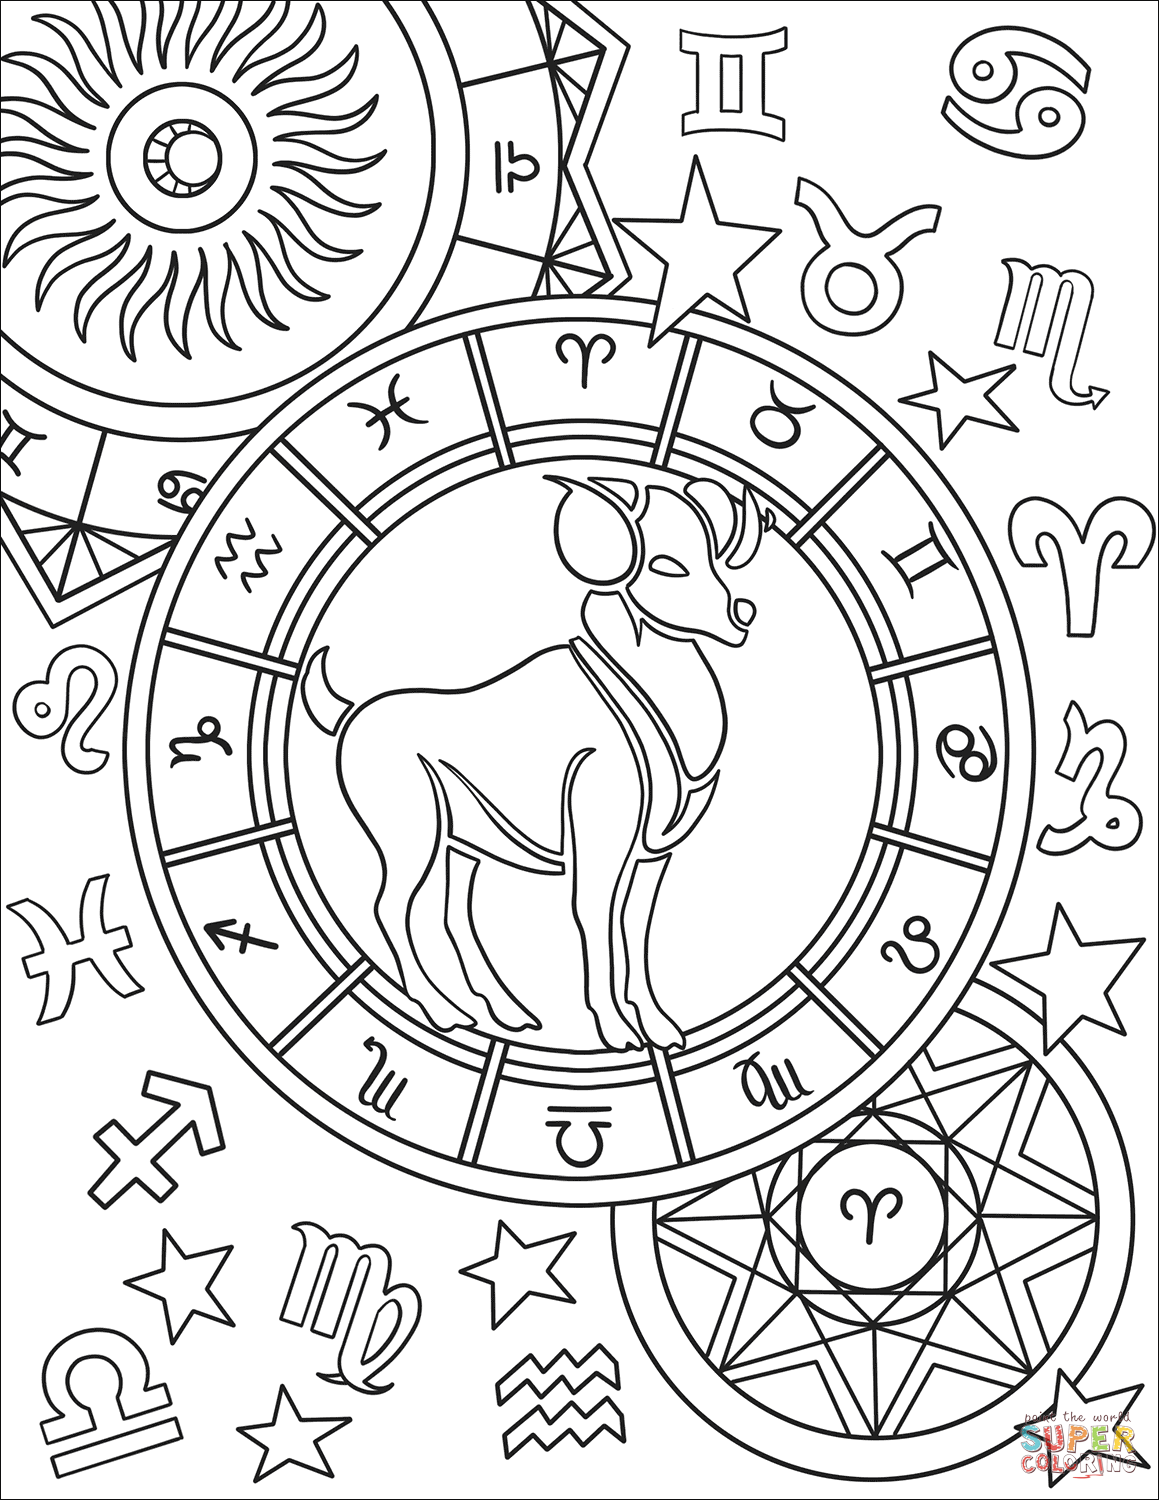 printable zodiac coloring pages zodiac signs coloring pages kidsuki pages zodiac printable coloring